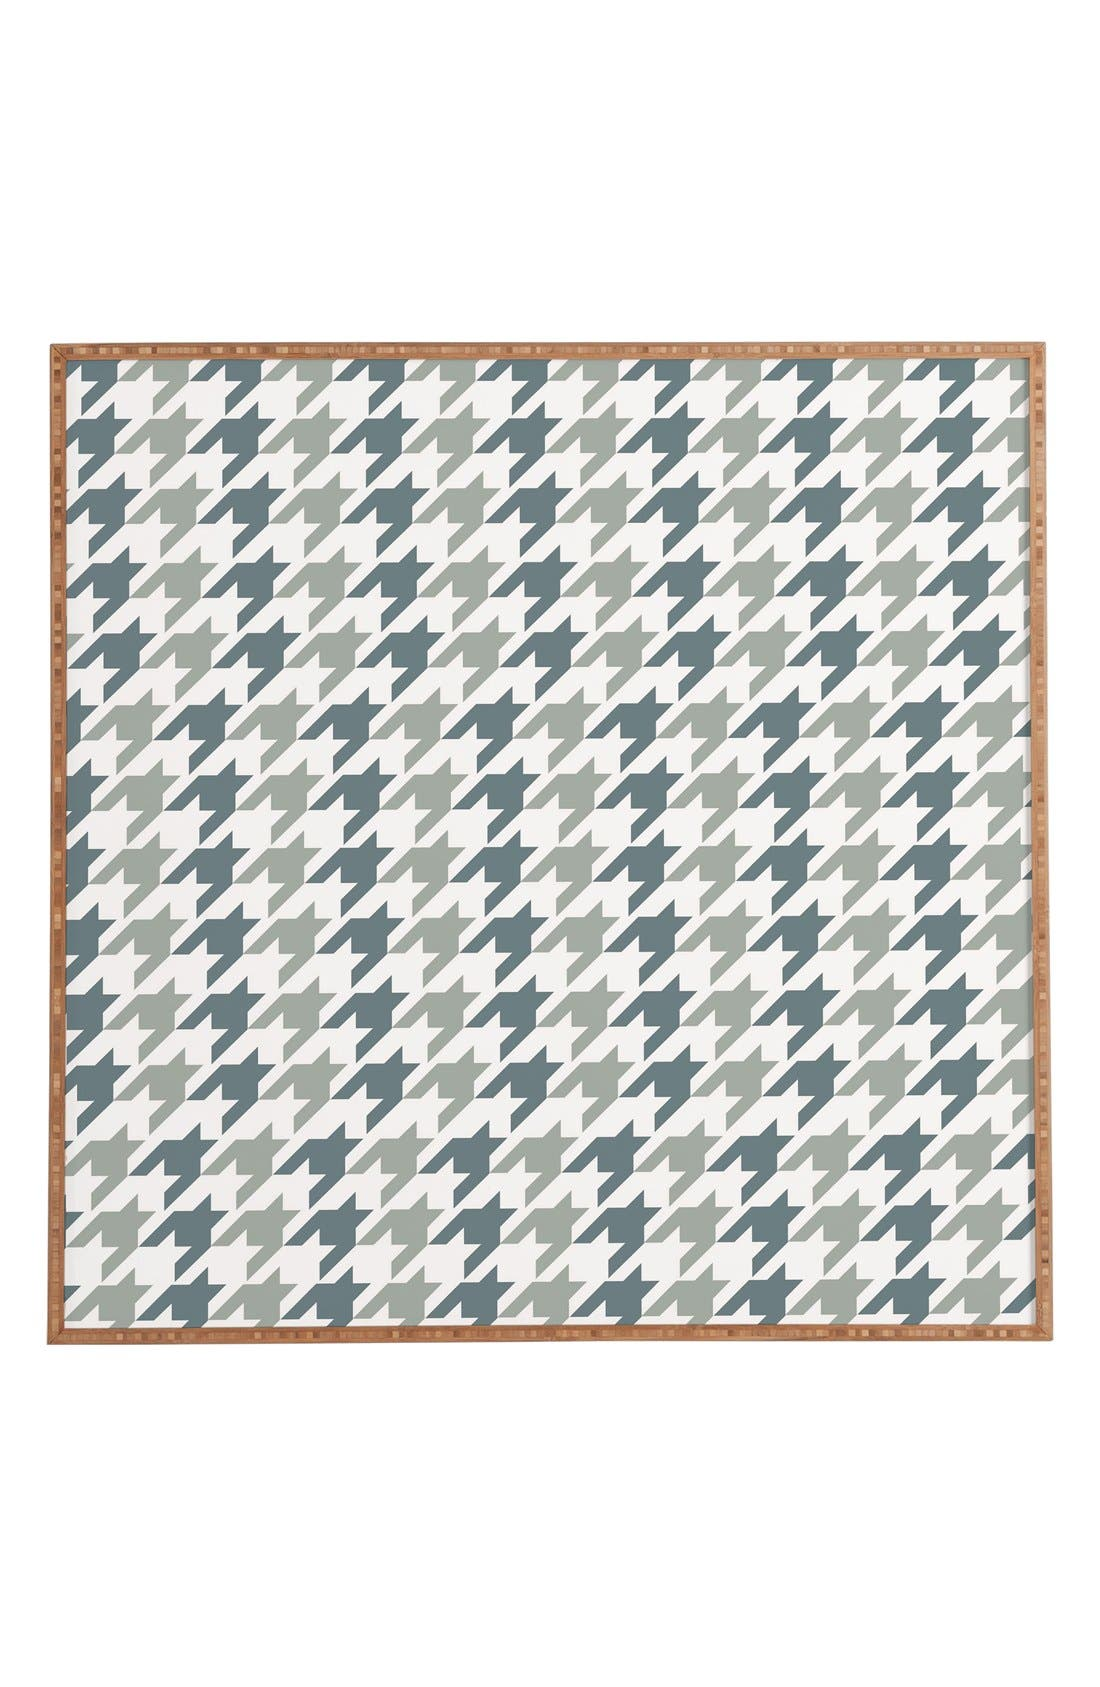 DENY DESIGNS 'Houndstooth' Framed Wall Art